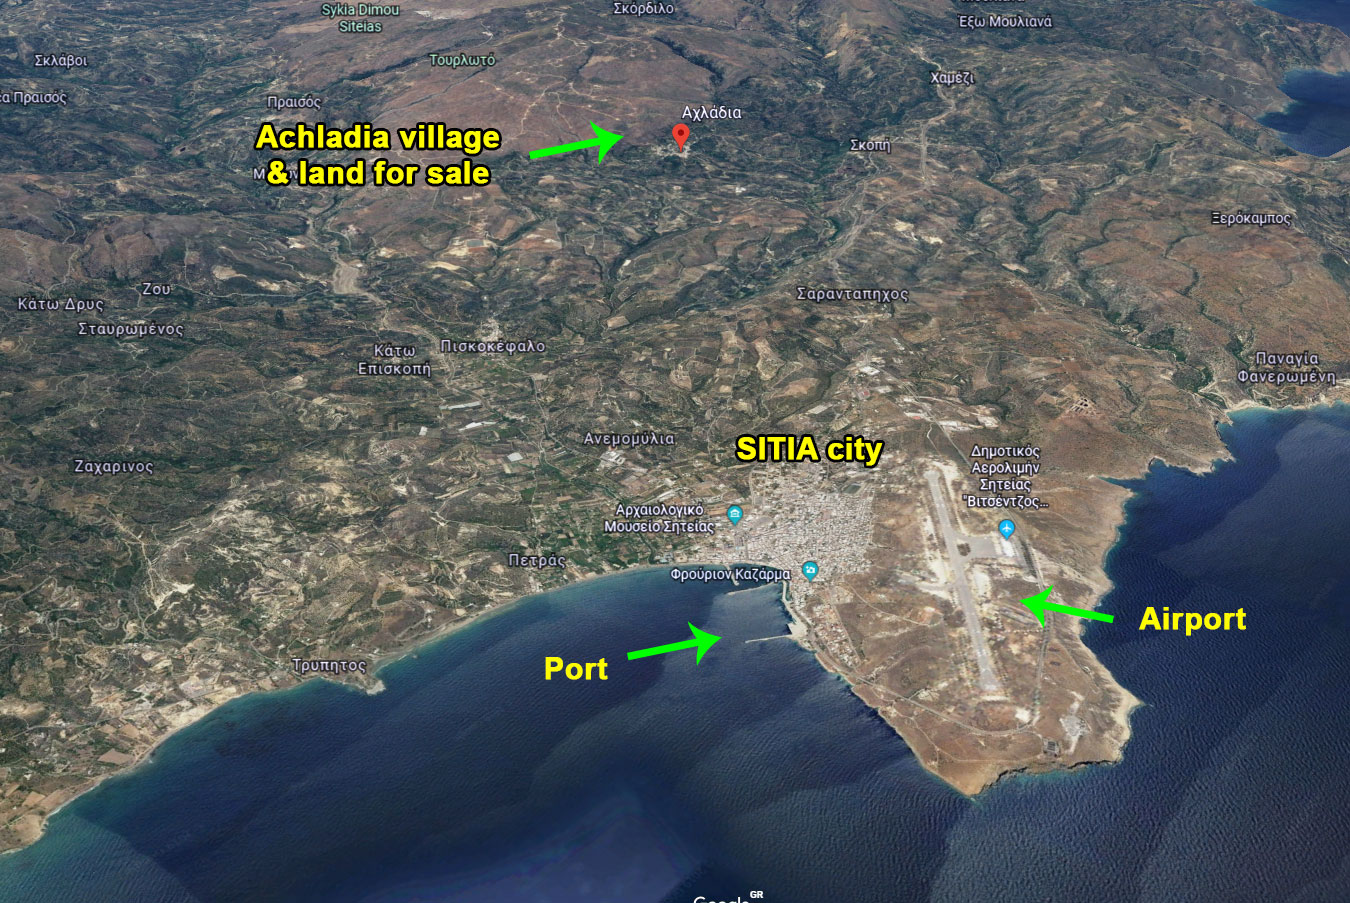 Plot for sale in the traditional village of Achladia near Sitia – Crete.